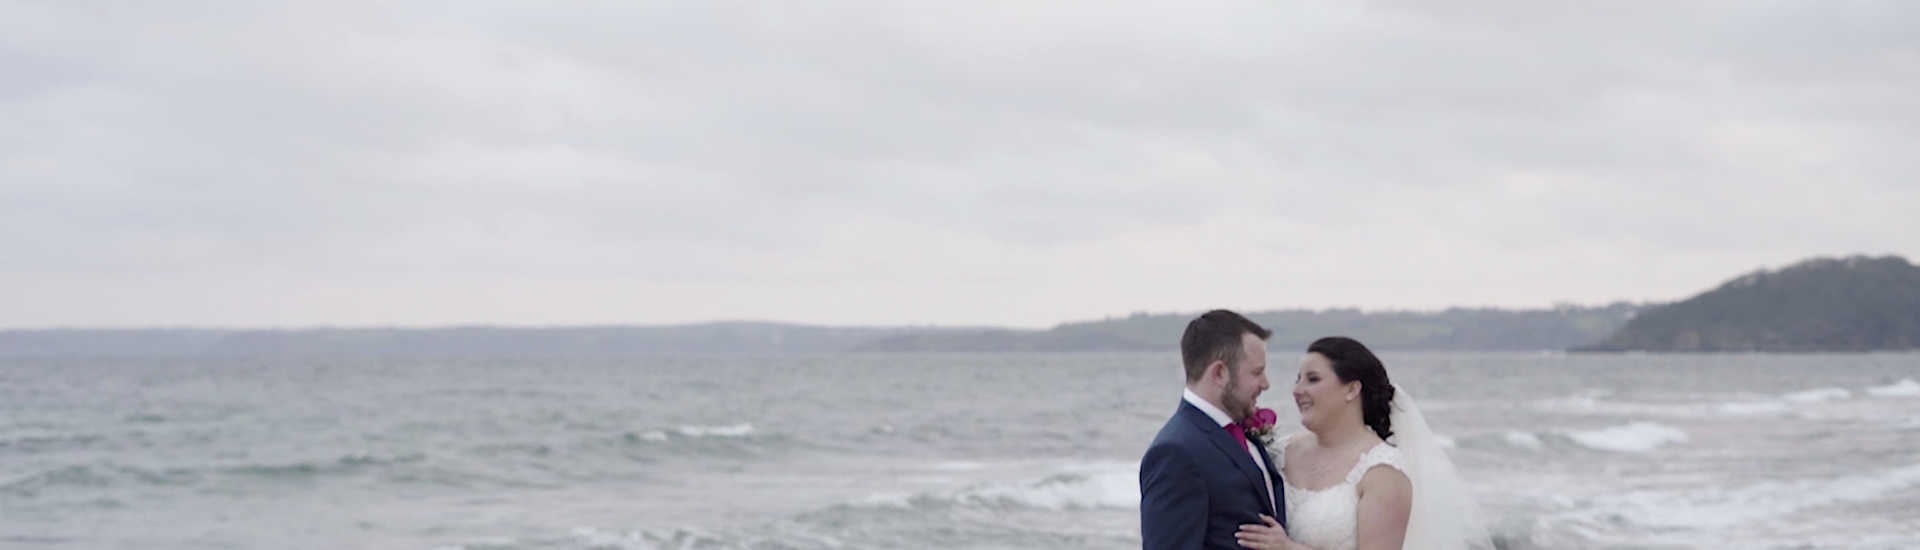 falmouth hotel wedding video